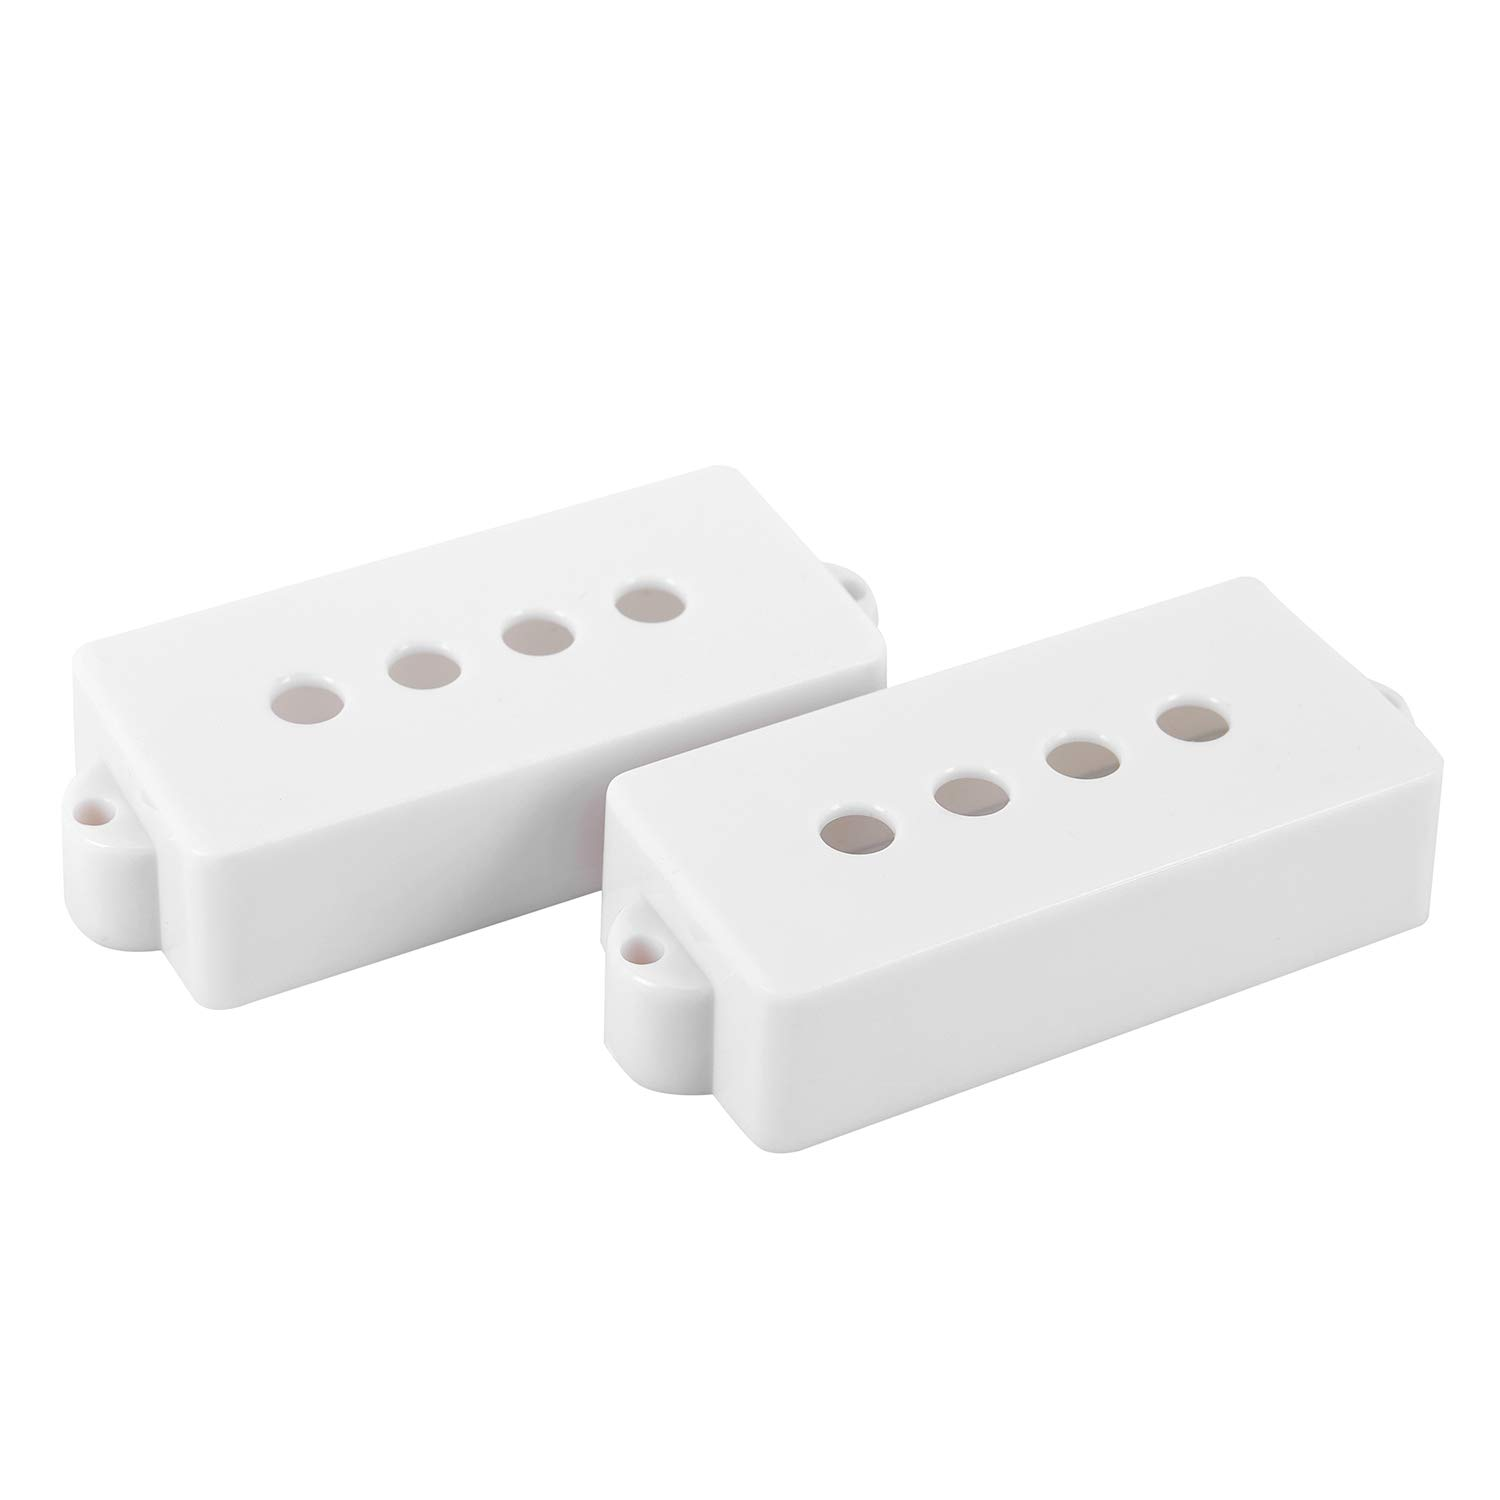 SODIAL 2PCS Electric Guitar PB P-Bass Pickup Covers 28.5MM Space white Great Replacement White